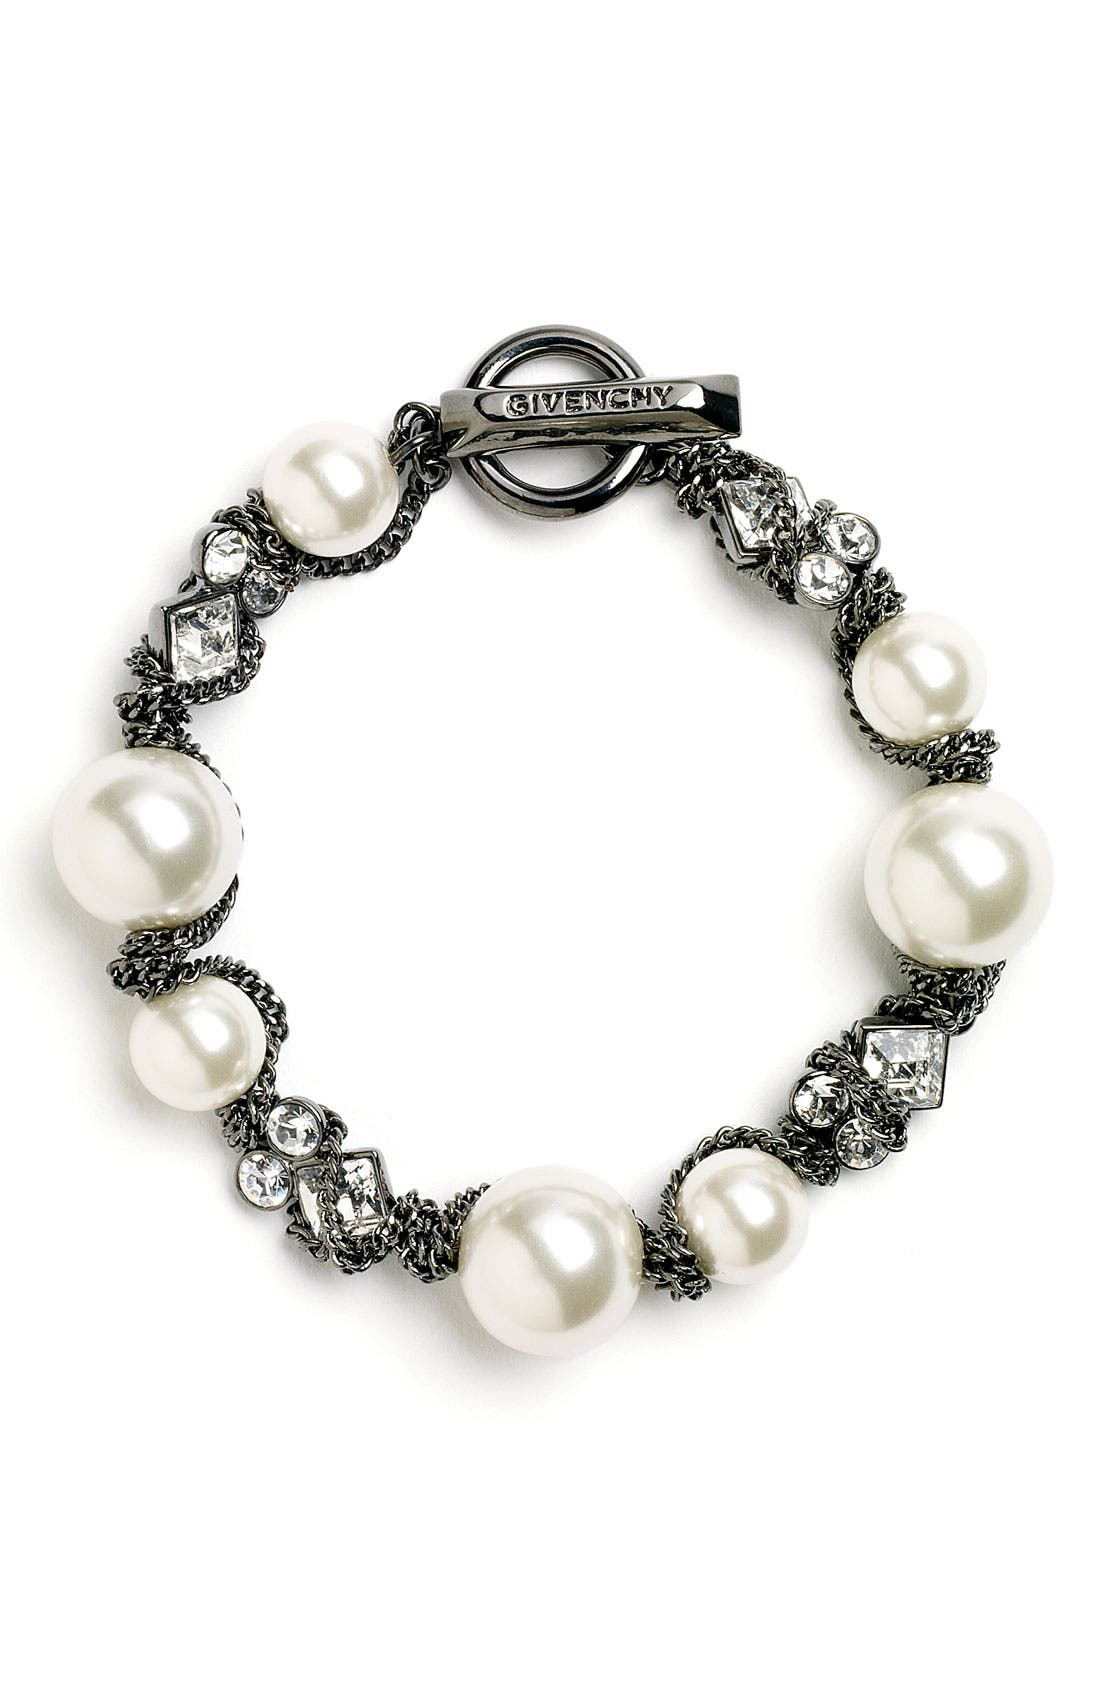 GIVENCHY, Small Faux Pearl Bracelet, Main thumbnail 1, color, 020